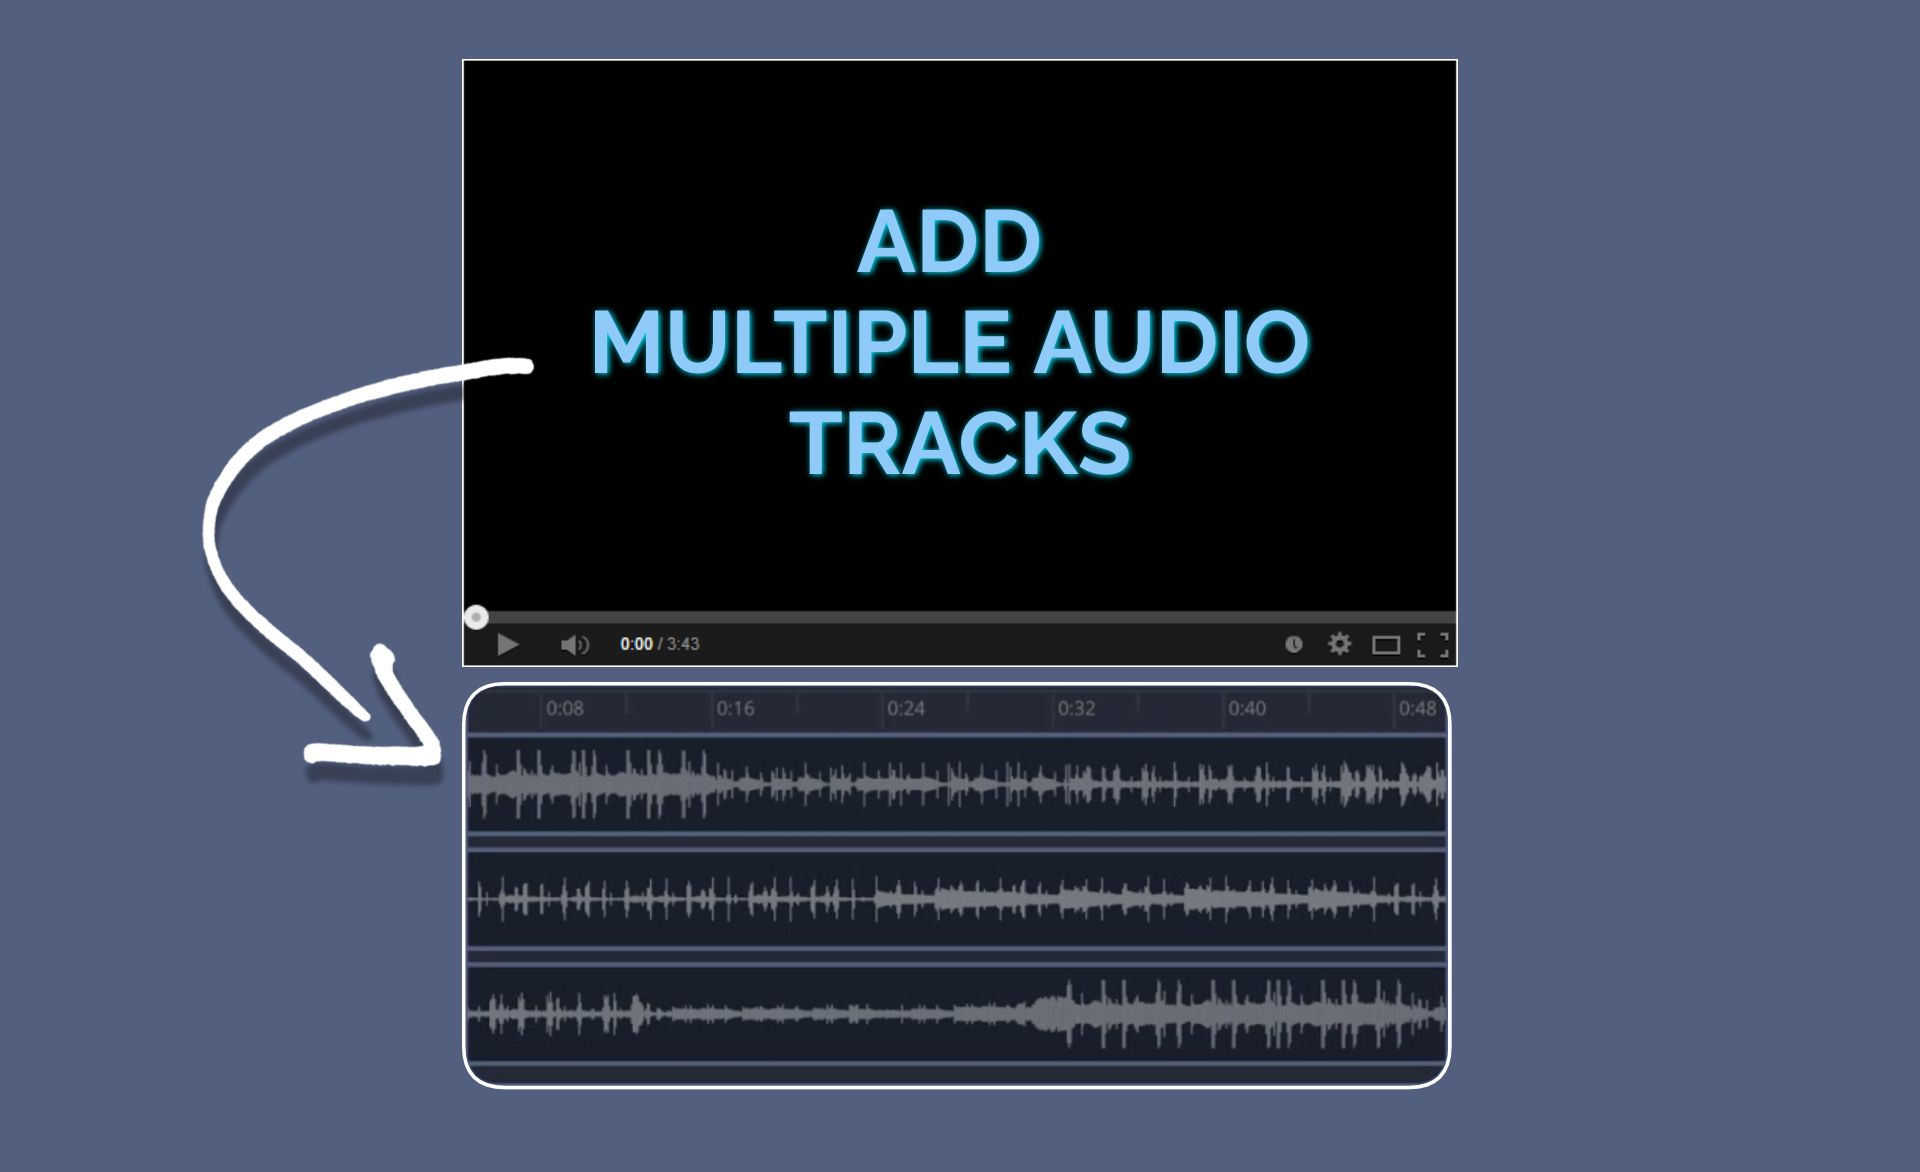 How to Add Multiple Audio Tracks to a Video Online